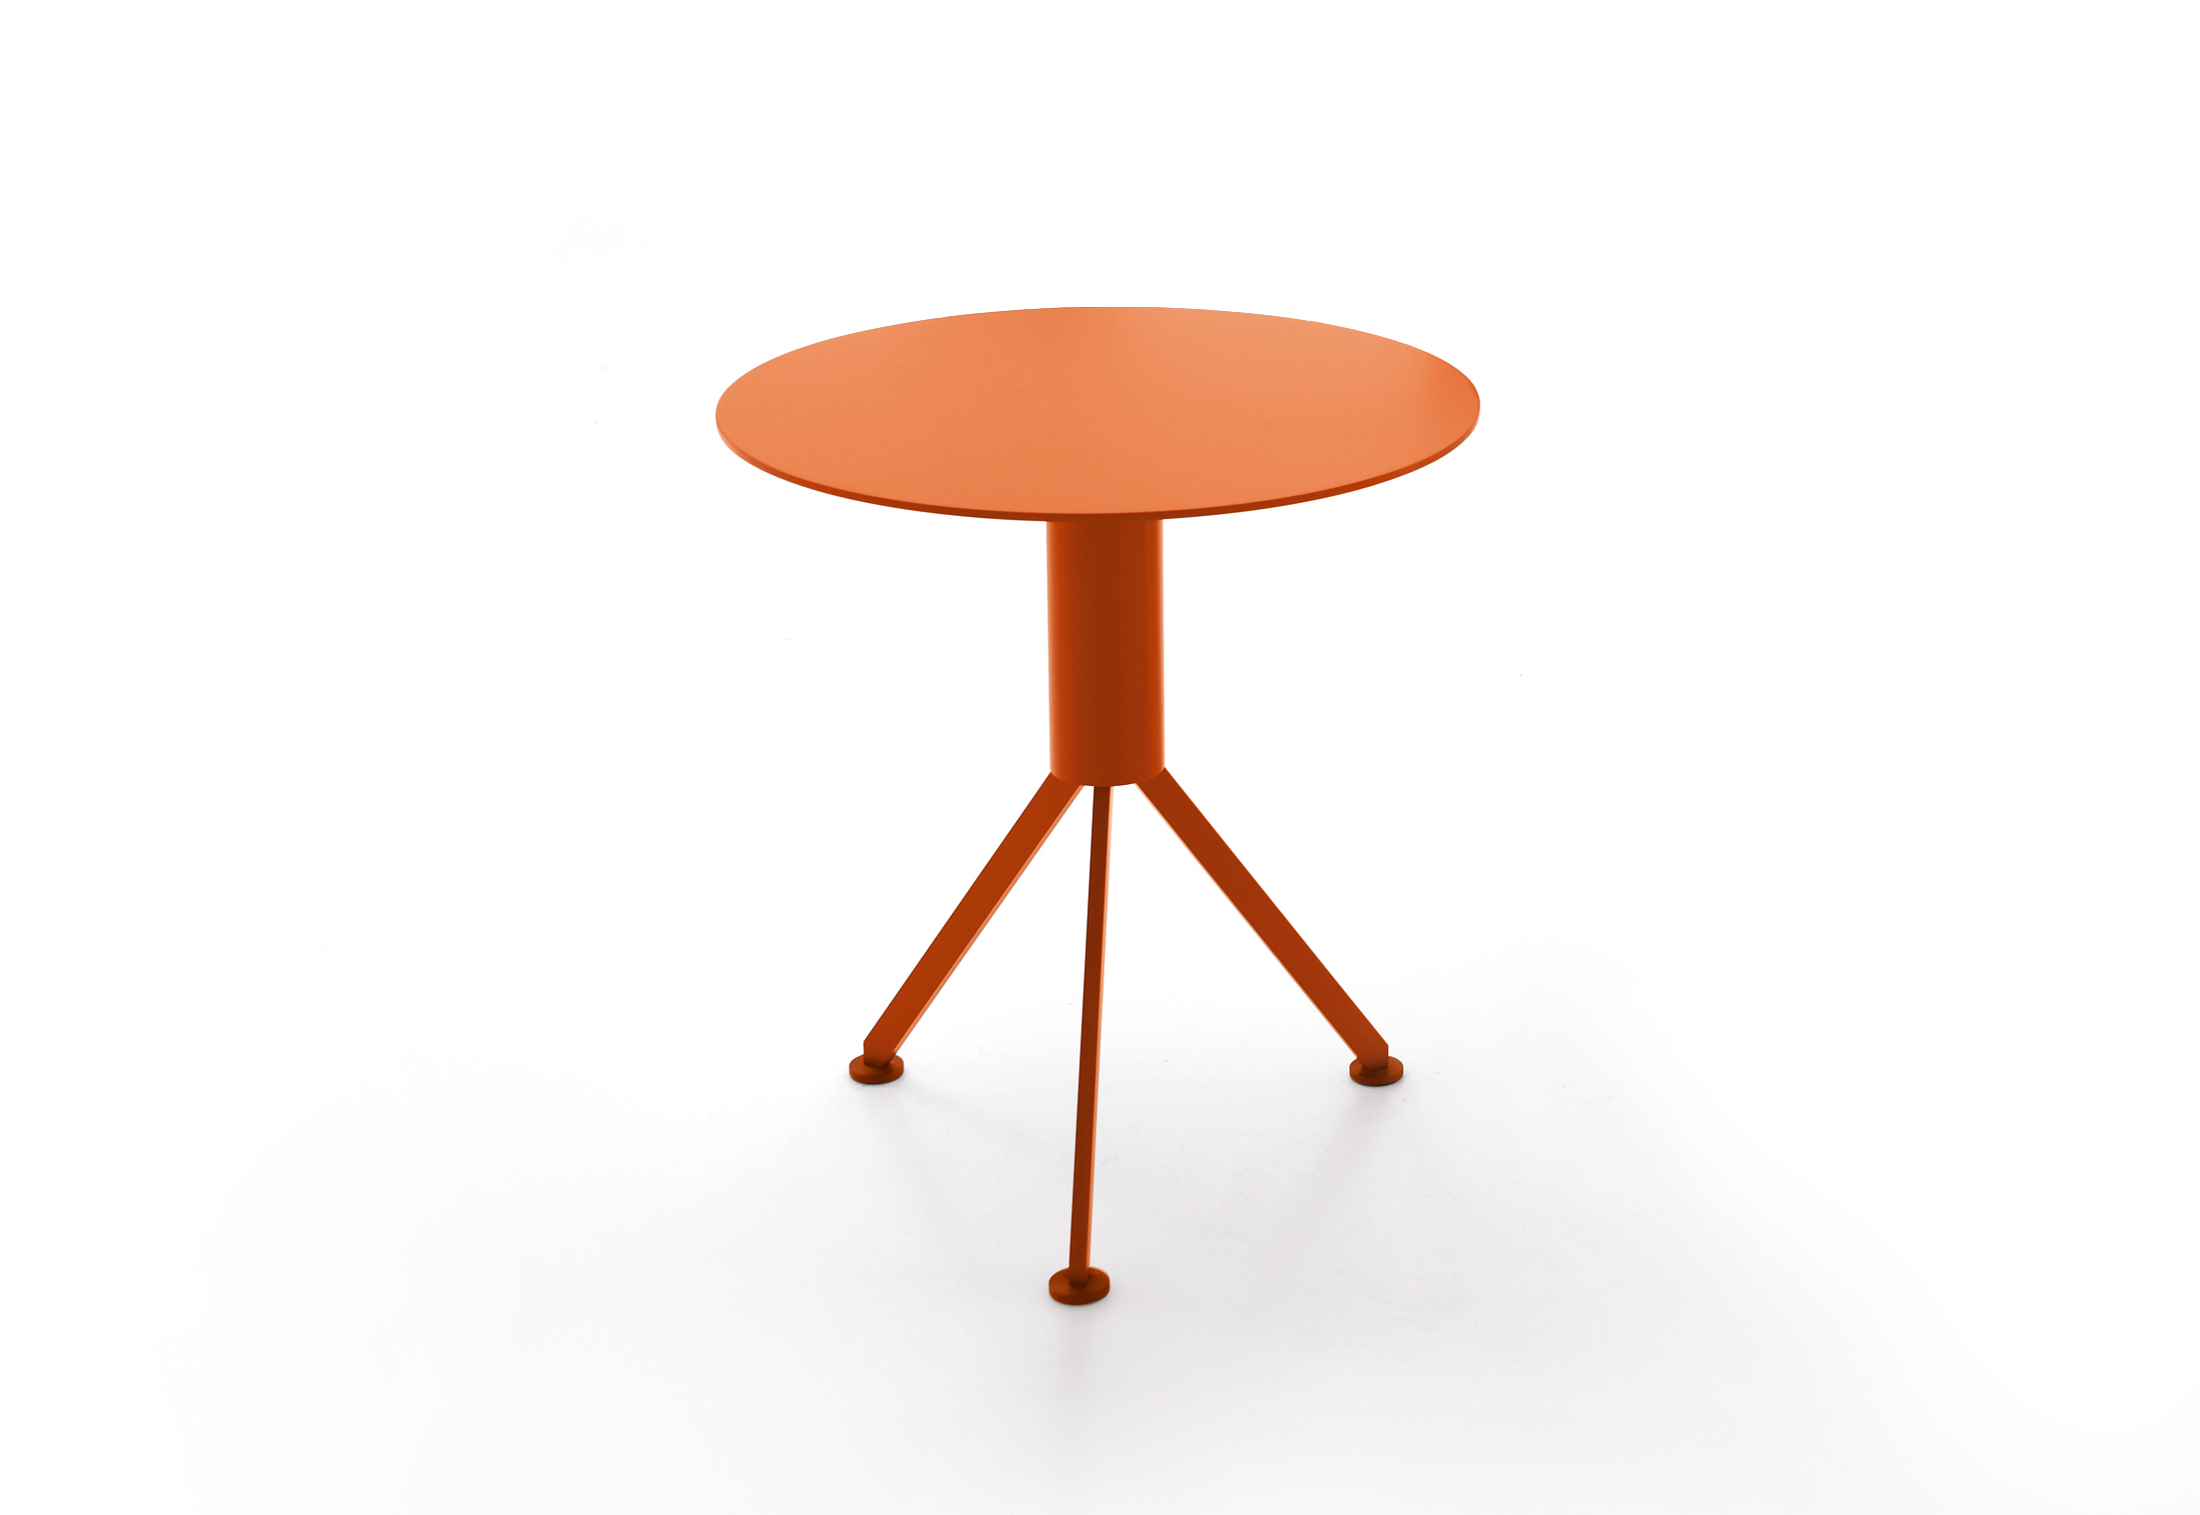 husk outdoor side table italia stylepark orange lamp design room essentials shelf bookcase sun umbrellas for decks corner bench dining ikea console round glass nest tables short